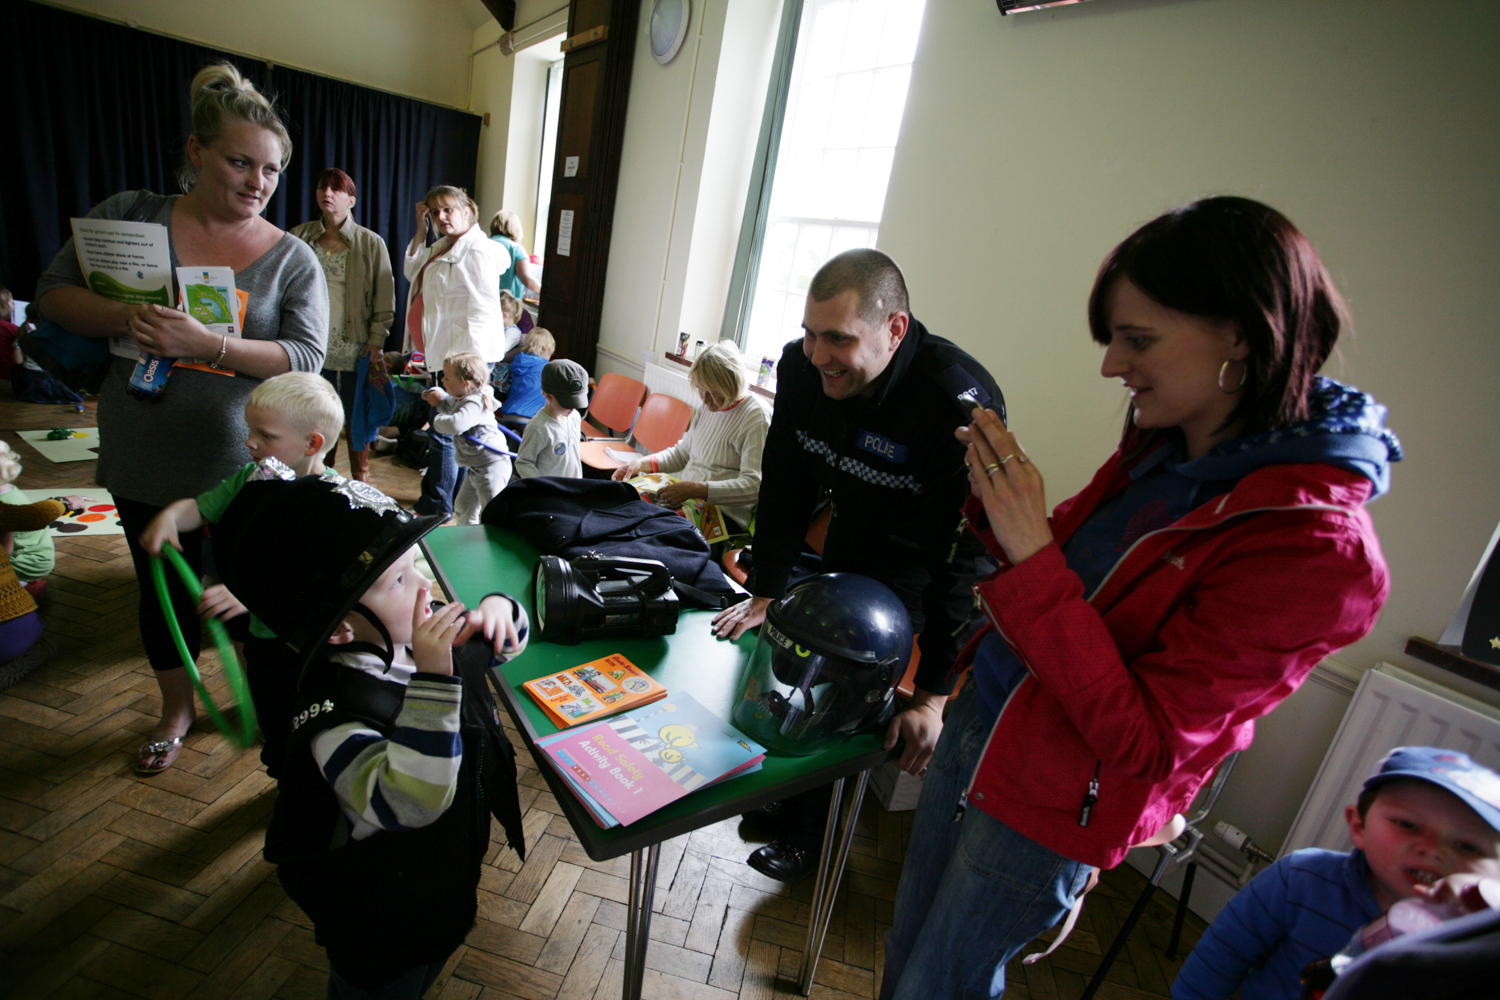 PICTORIAL_BERWICK_bookstart-heatherslaw-funded-day-out-educational-extended-services-lorna-chappell-organised-fire-police-9802.jpg